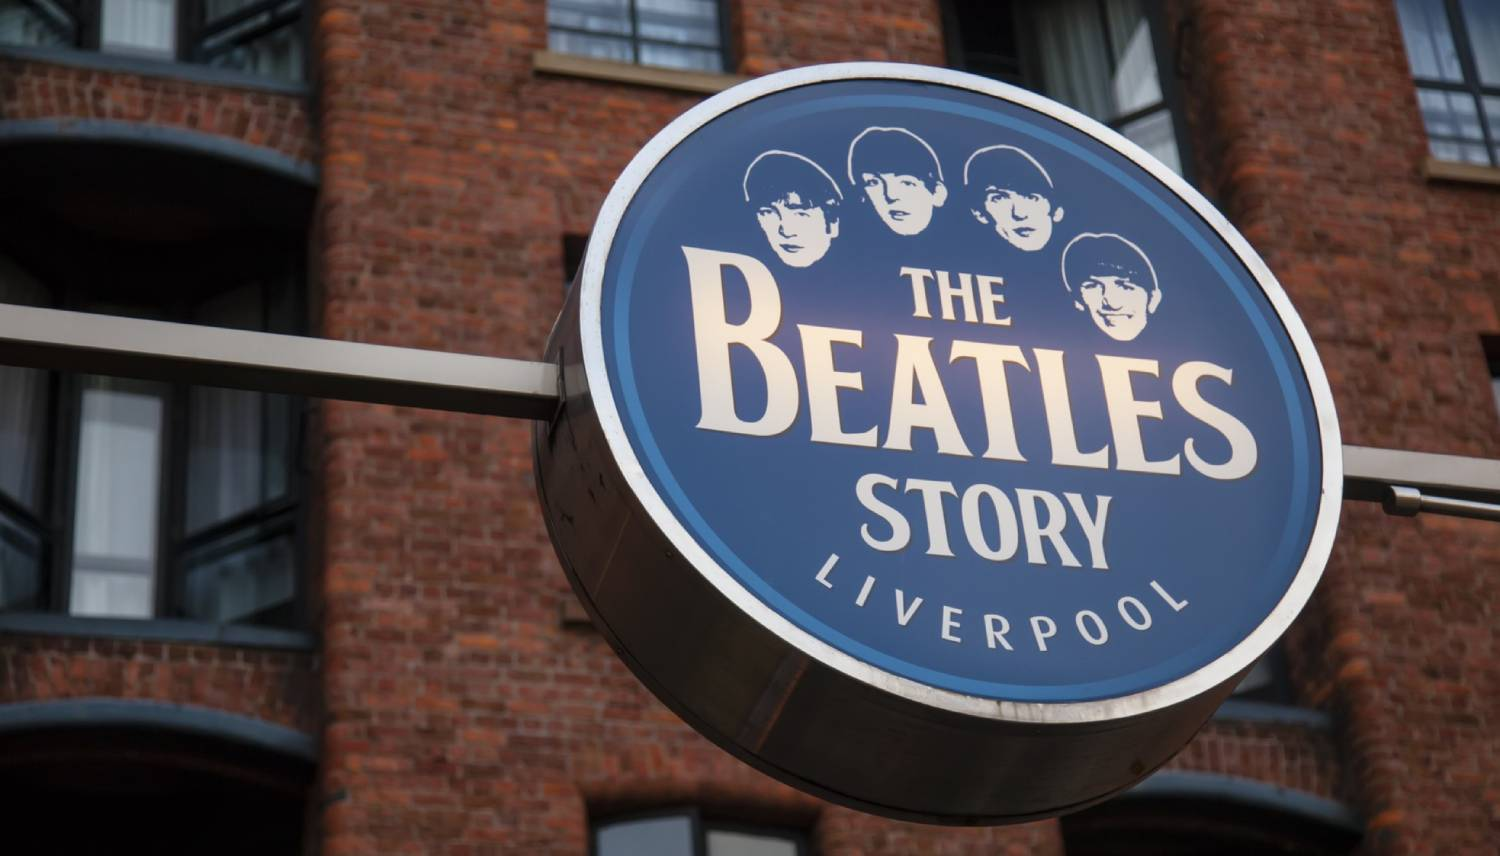 The Beatles Story - Things To Do In Liverpool